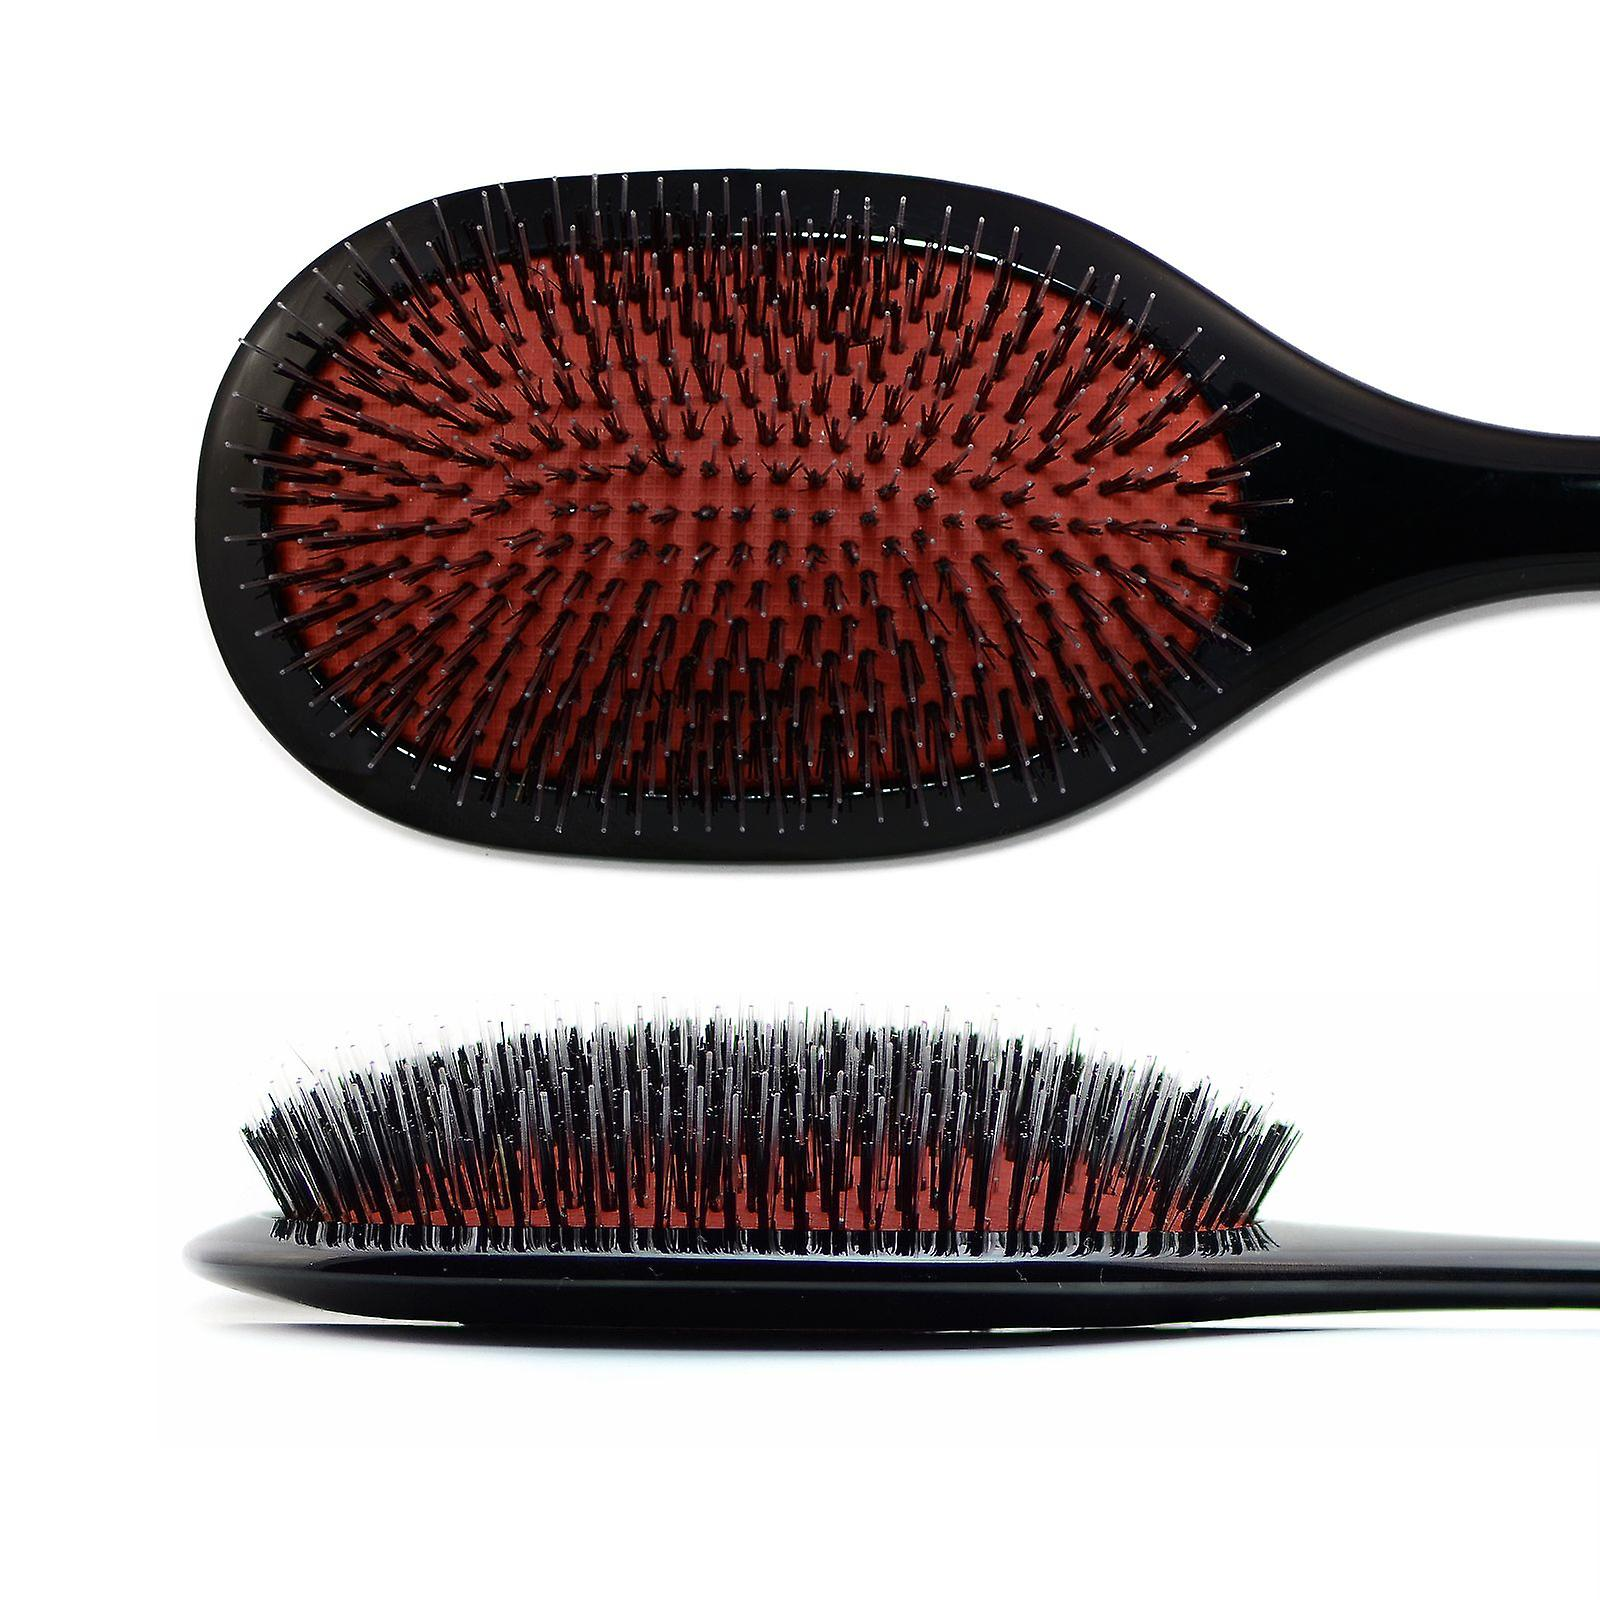 Large oval hair brush 2241